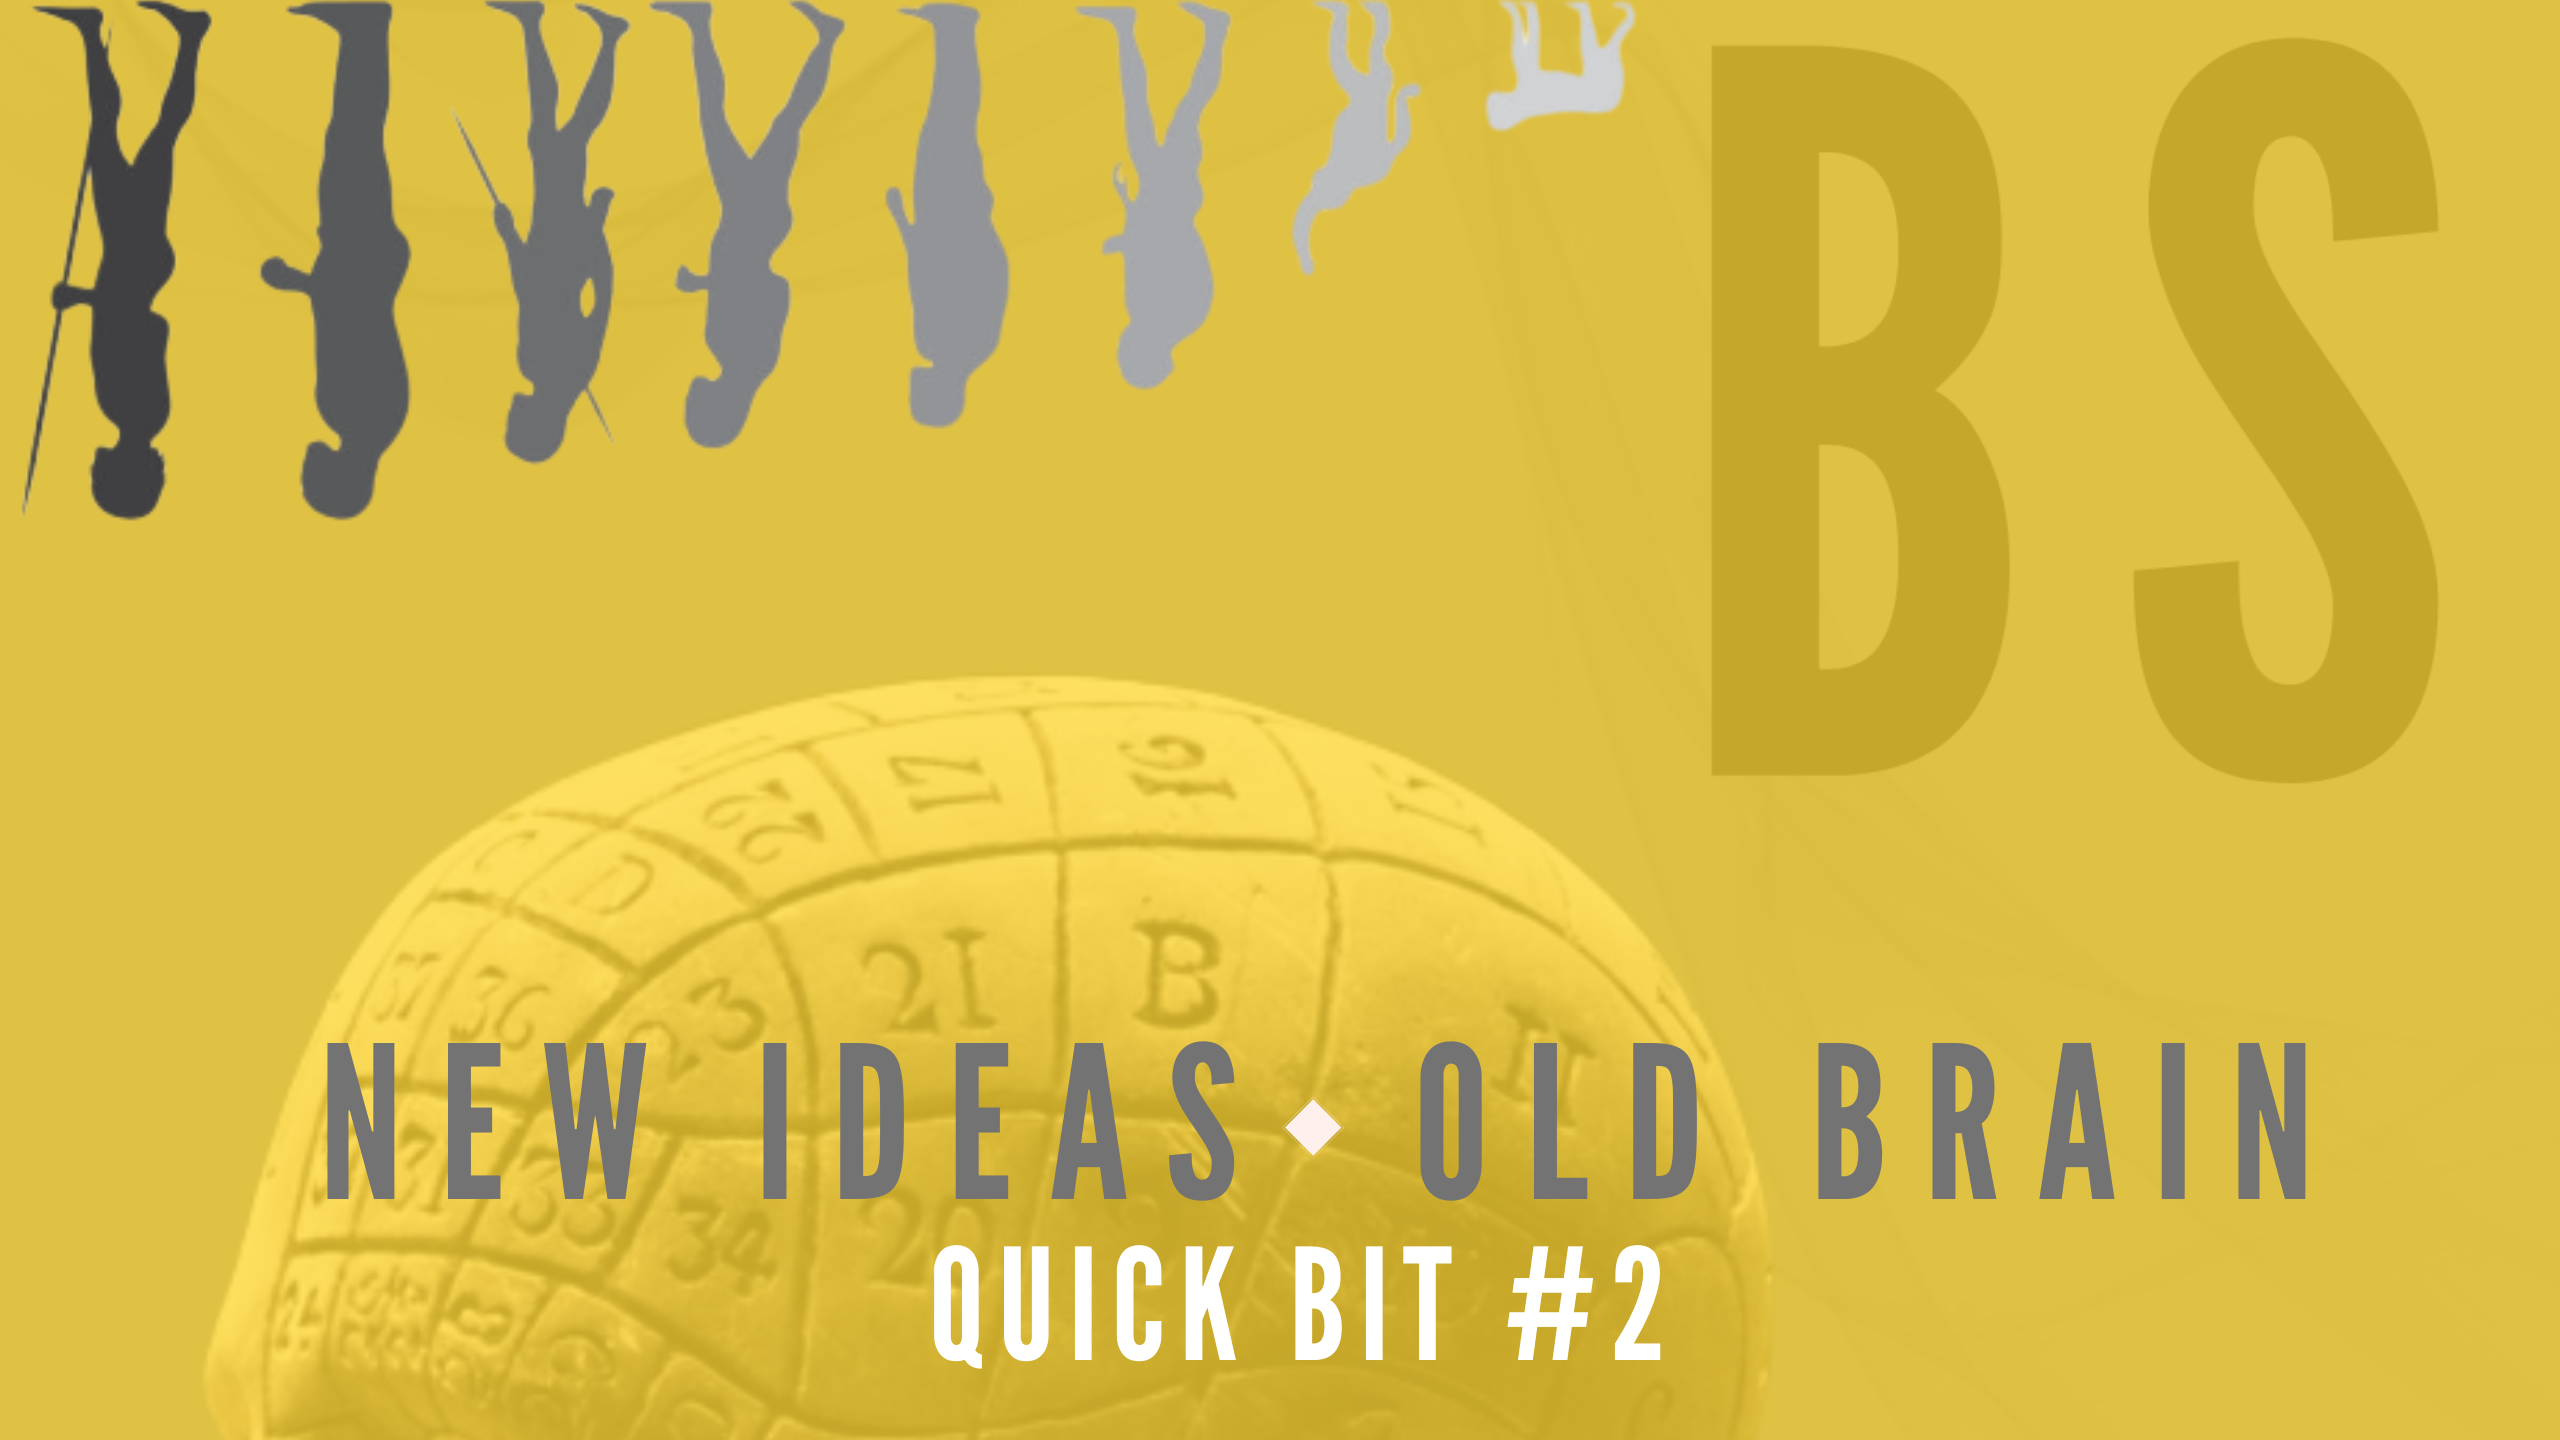 New Ideas, Old Brain Quick Bit #2: For Innovation's Sake, Take Your Vacations